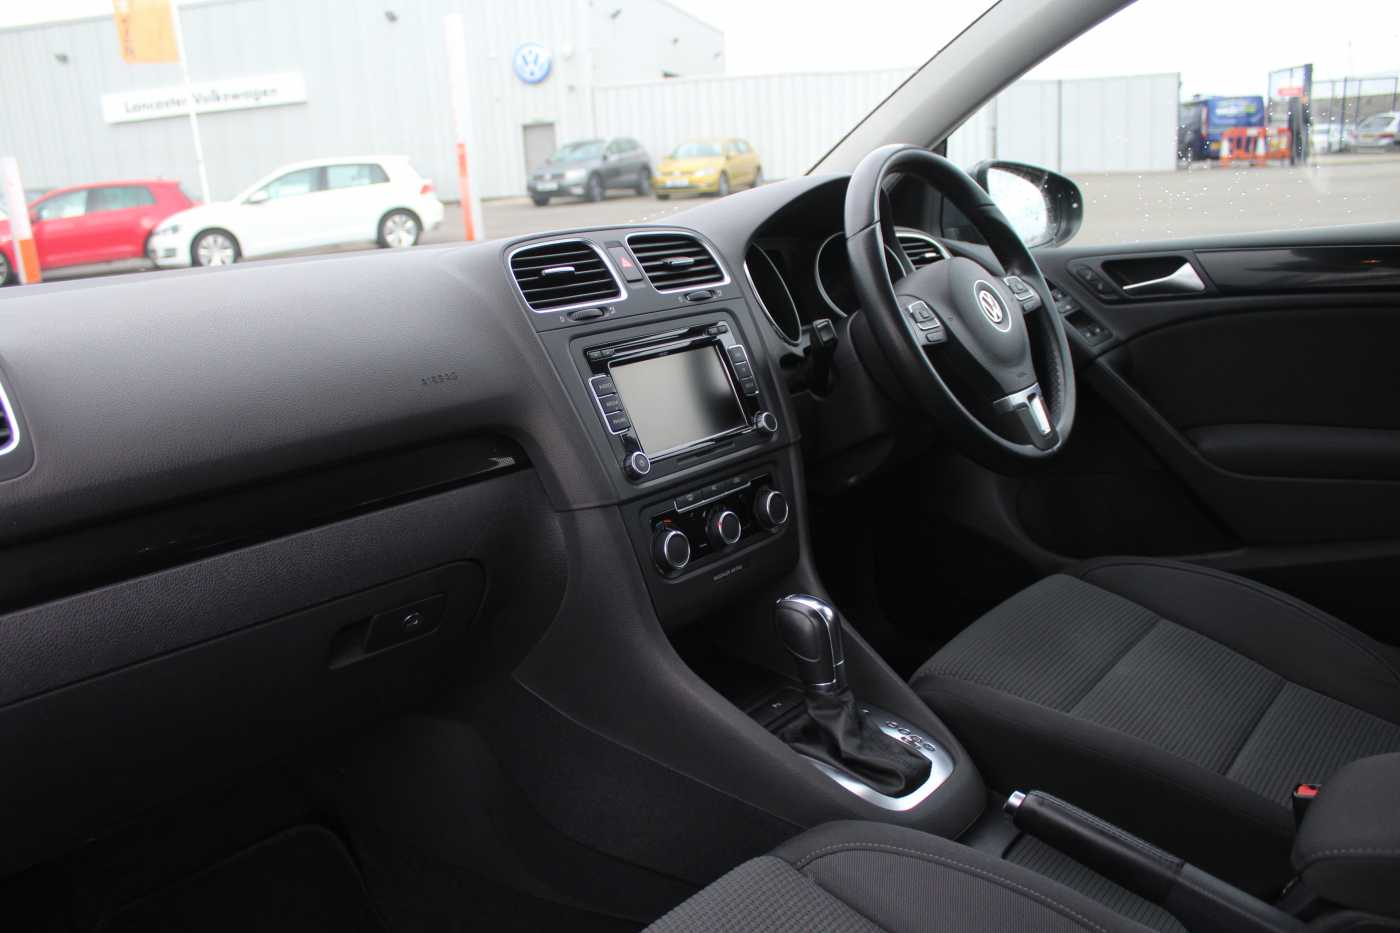 Volkswagen Golf 1.6 TDI Match 105PS DSG 5Dr